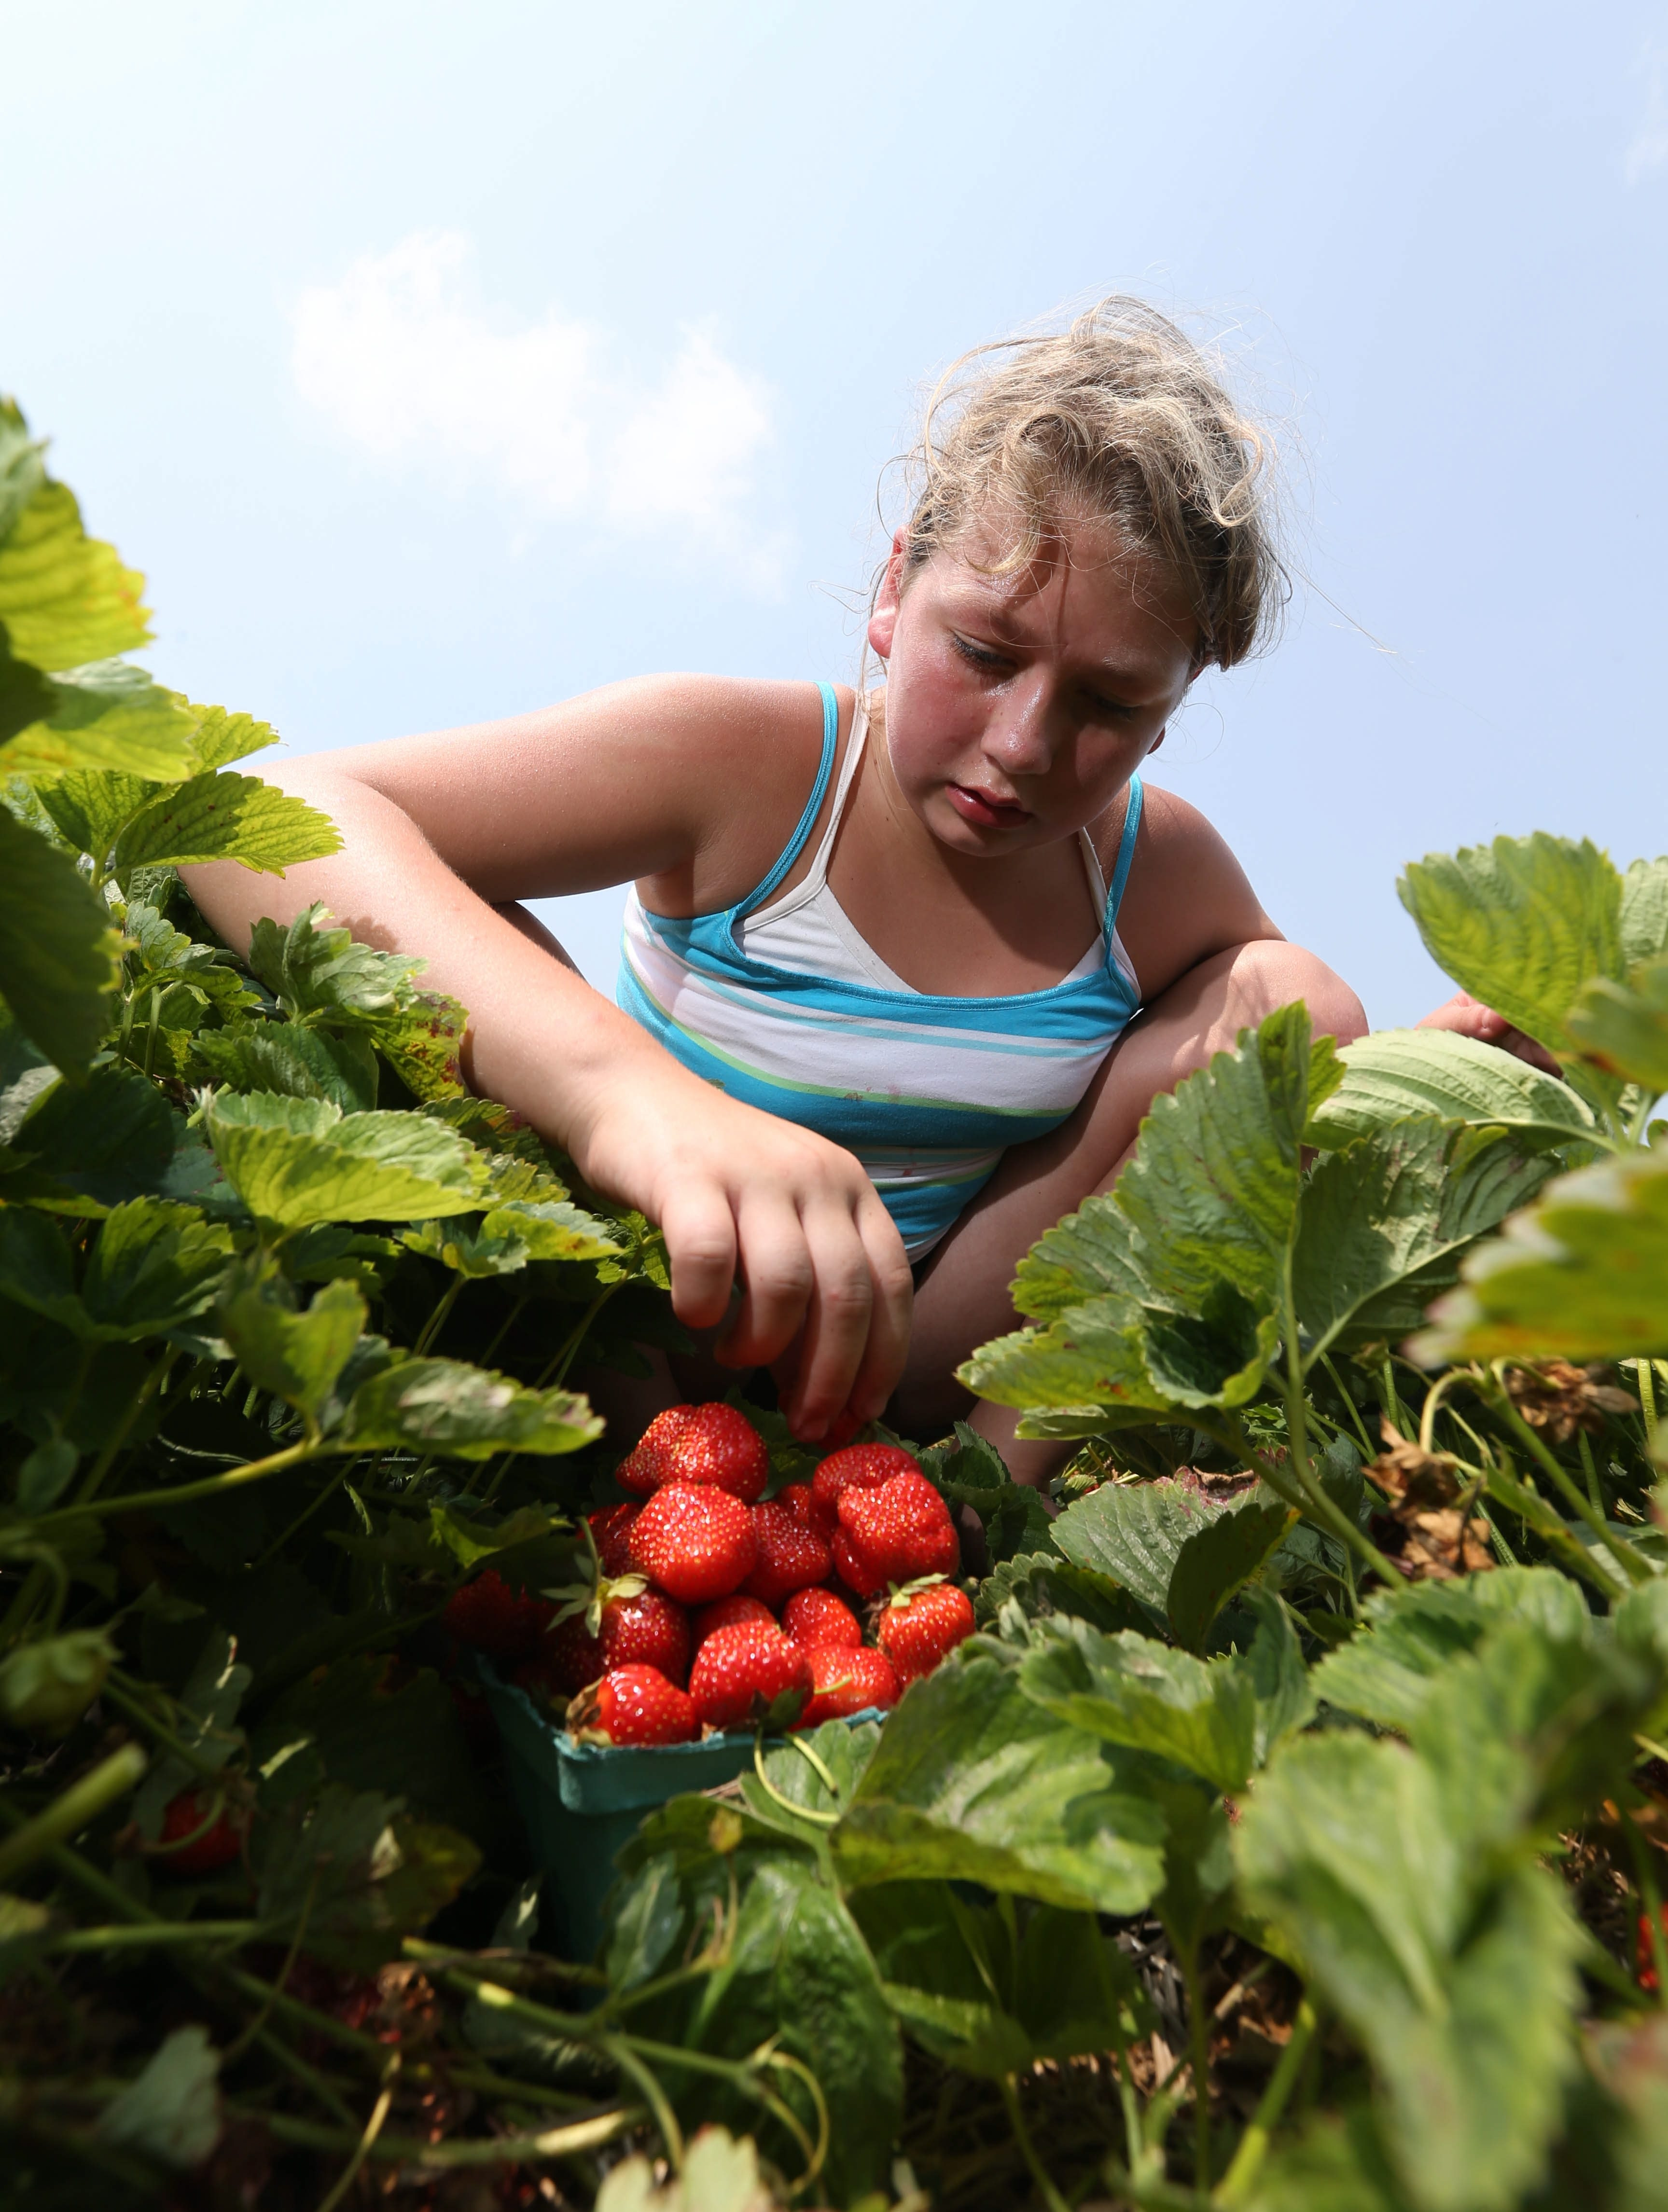 Red gold: Even though the strawberry season was winding down this week, U-pickers found more than enough to keep them happy at Greg's U-Pick in Clarence. At top, Olivia Burzynski, 11, of Sloan, who came with her mother Kim Myer, tops off a basket of berries. Above, Cheri Kwiatek of Lancaster picks the strawberries while her sons Wesley, 3, left, and Drayton, 5, sample the harvest. At left, Celena Johncox, 15, of Lockport, reaches for a few more berries.